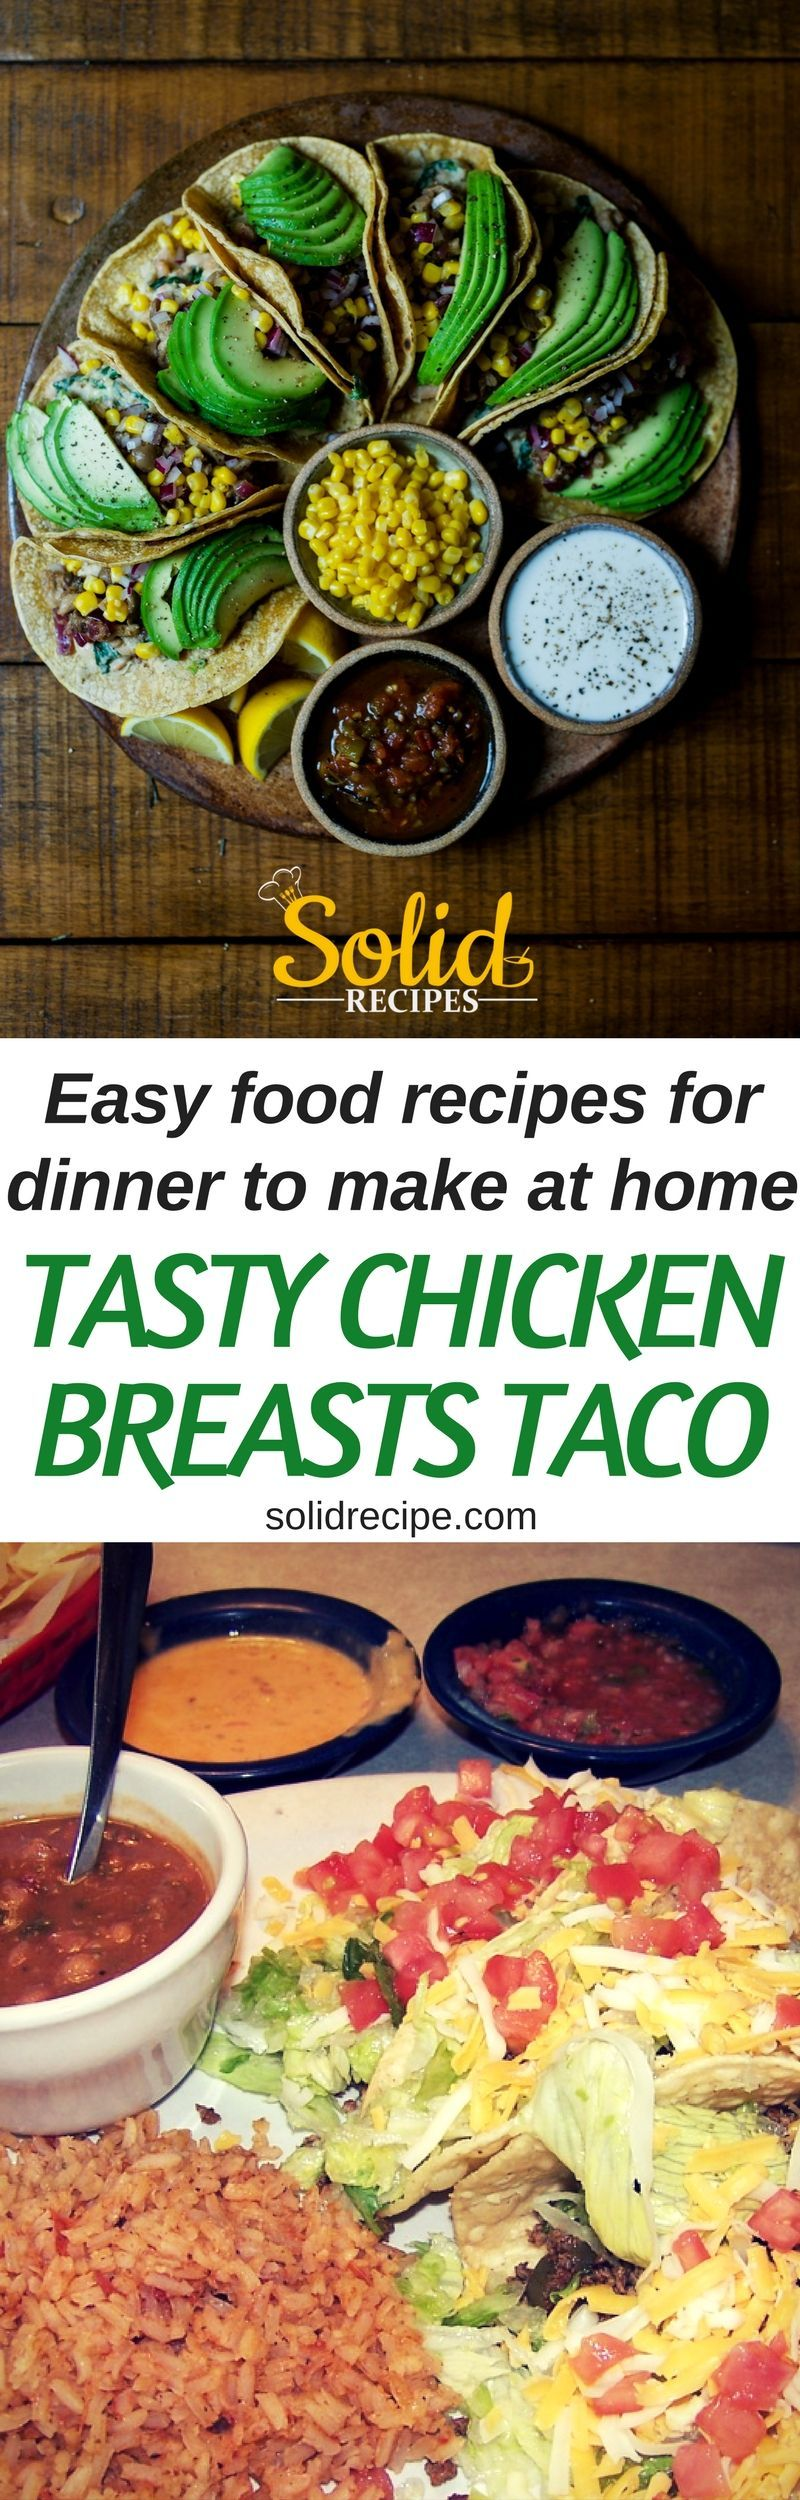 Tasty chicken breasts taco cooking videos easy food recipes for tasty chicken breasts taco cooking videos easy food recipes for dinner to make at home not always the photos matched the recipe forumfinder Image collections